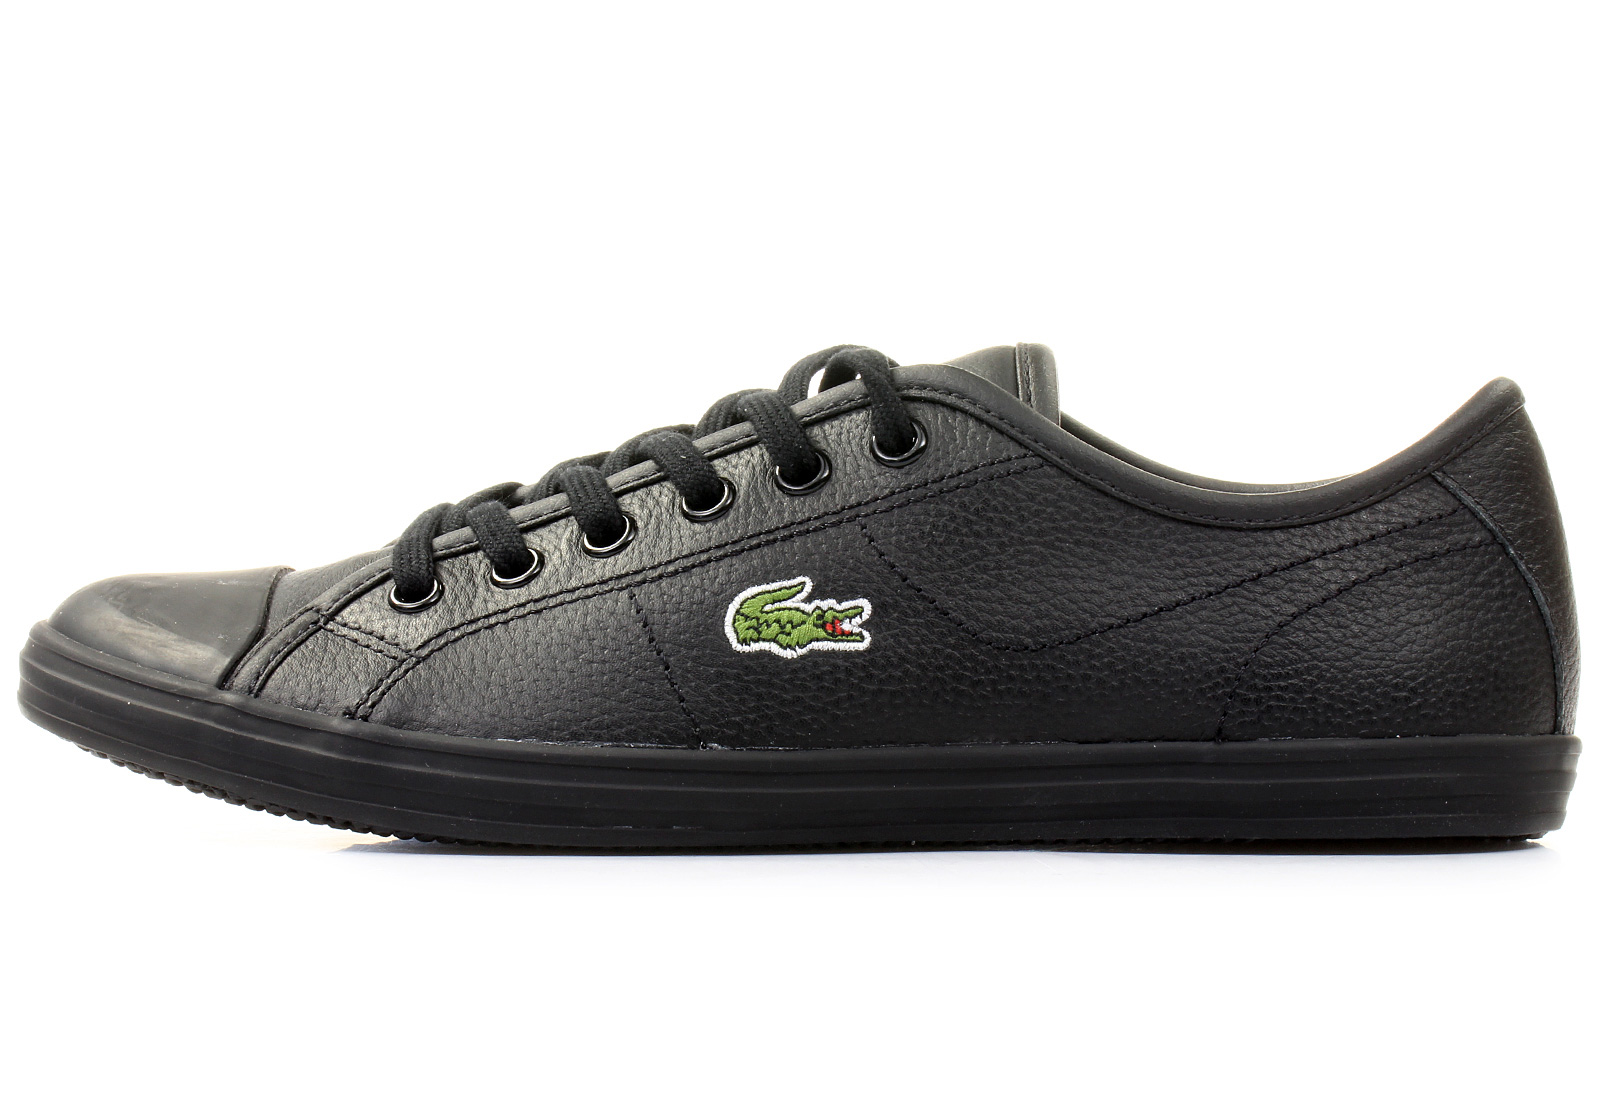 lacoste shoes ziane sneaker 144spw1152 02h online shop for sneakers shoes and boots. Black Bedroom Furniture Sets. Home Design Ideas